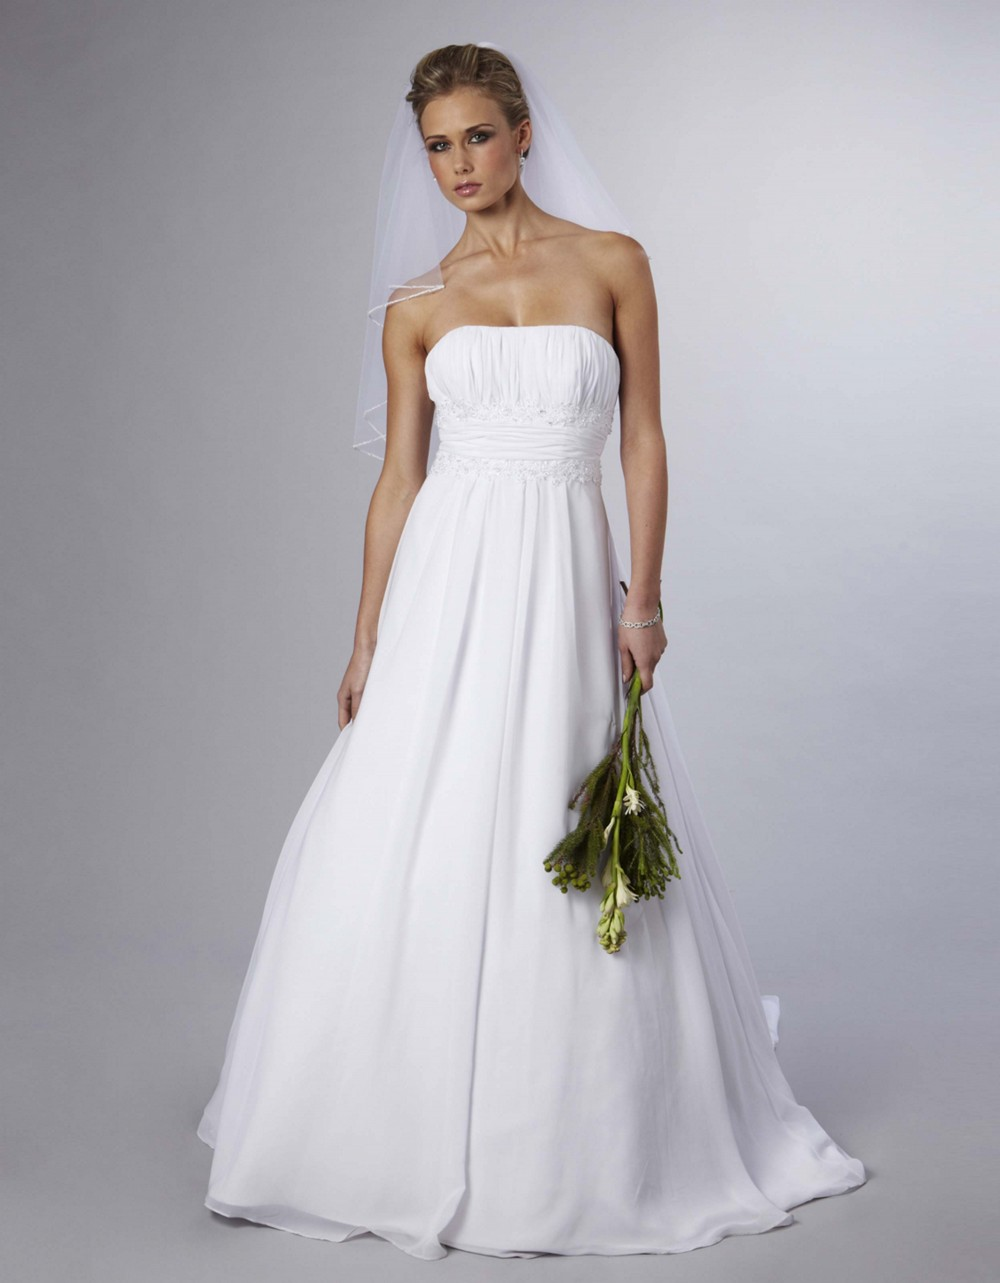 Bride co v9743 second hand wedding dress on sale 31 off for Second hand wedding dresses for sale